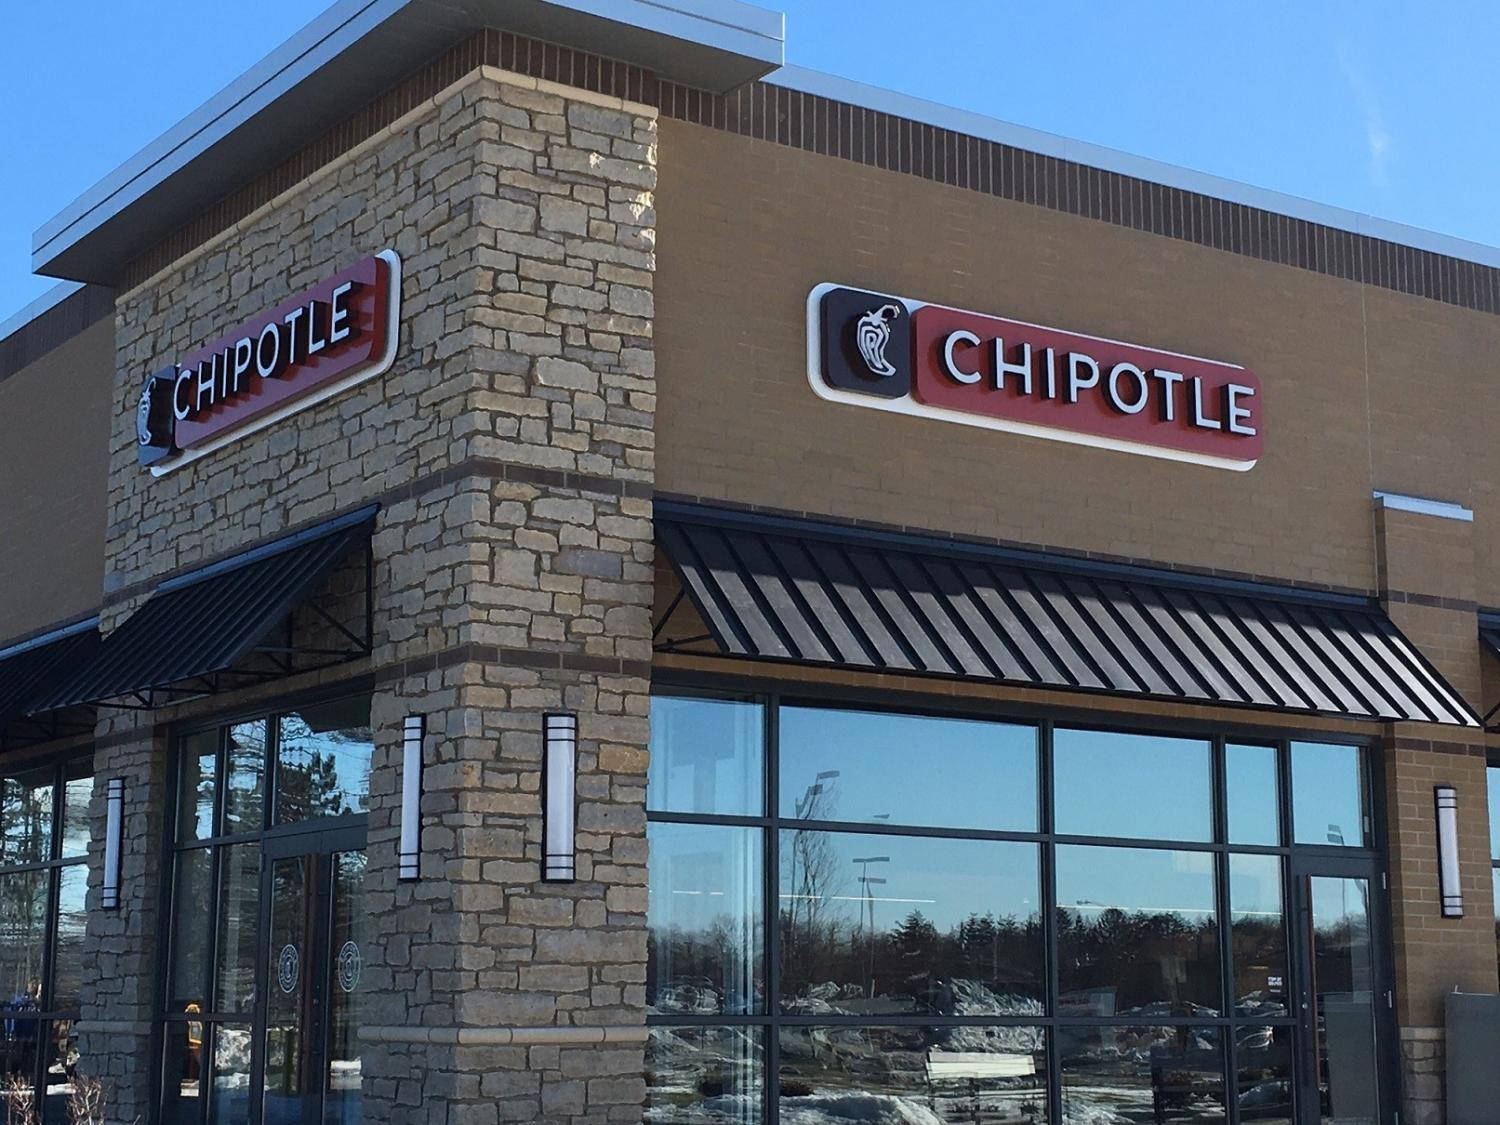 Chiptole-store-in-Lake-Bluff-IL-Jan-2016-v2.jpg